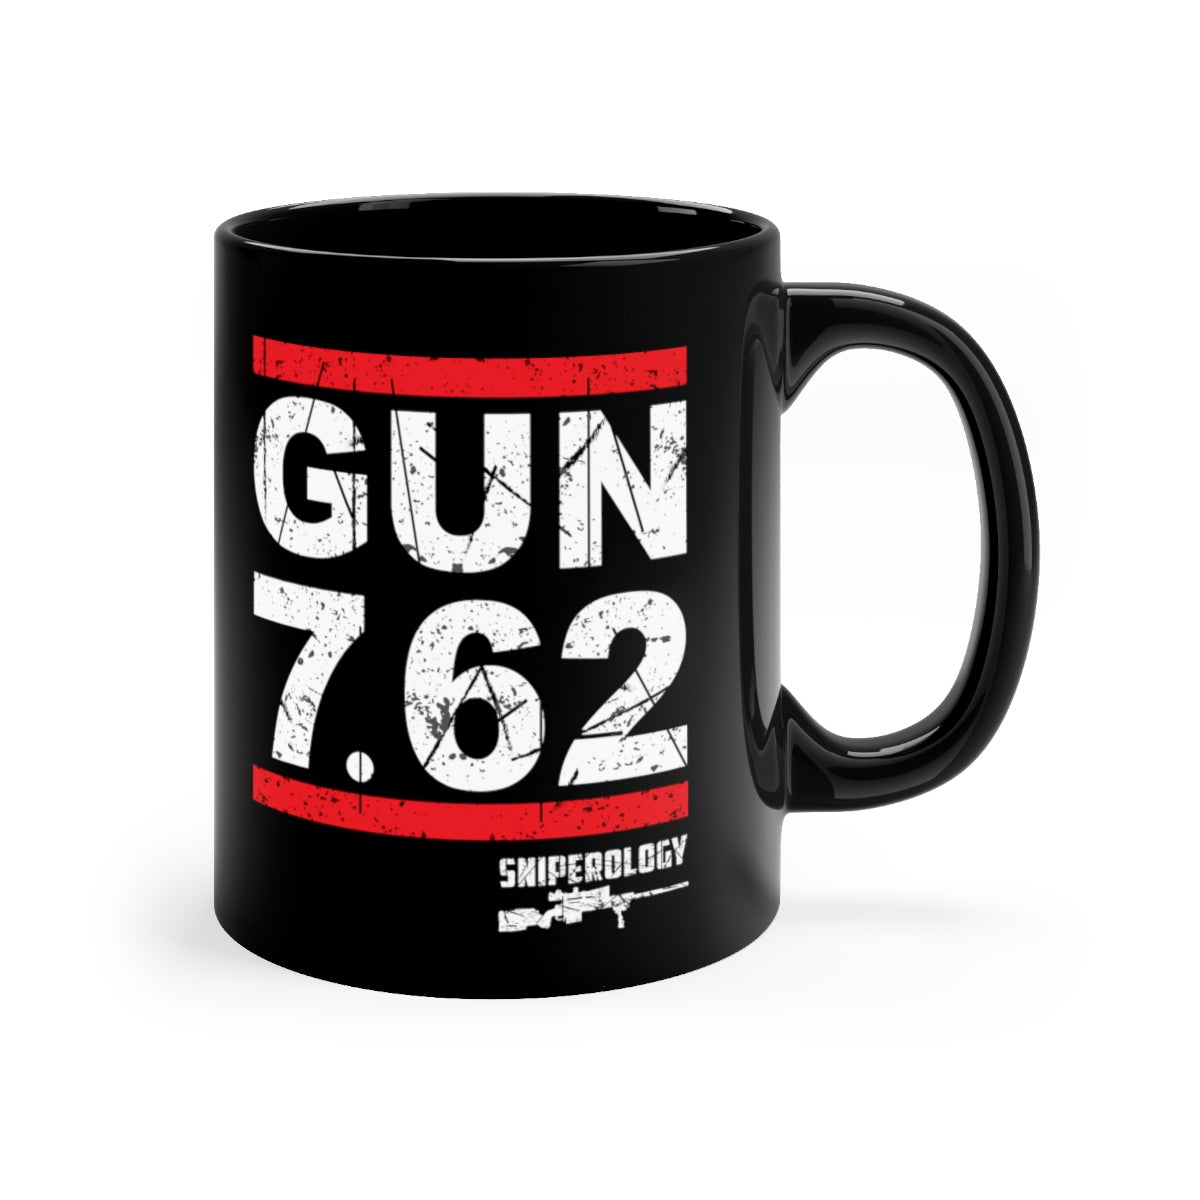 Gun 7.62 - Black mug 11oz - Sniperology